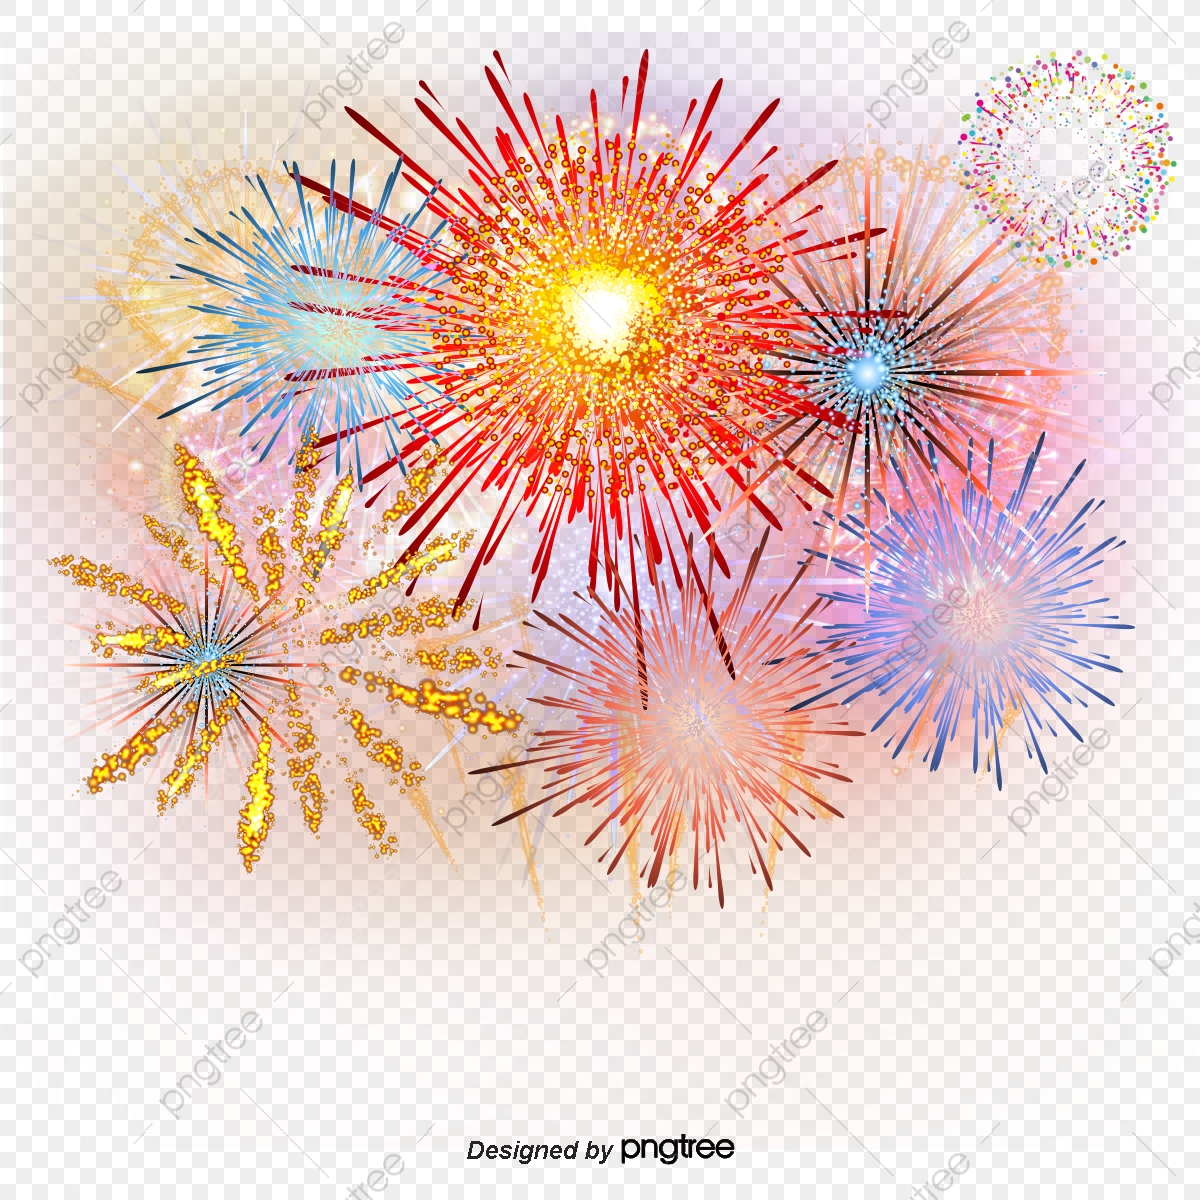 Fireworks, Fireworks Fireworks, Firework PNG Transparent Image and.